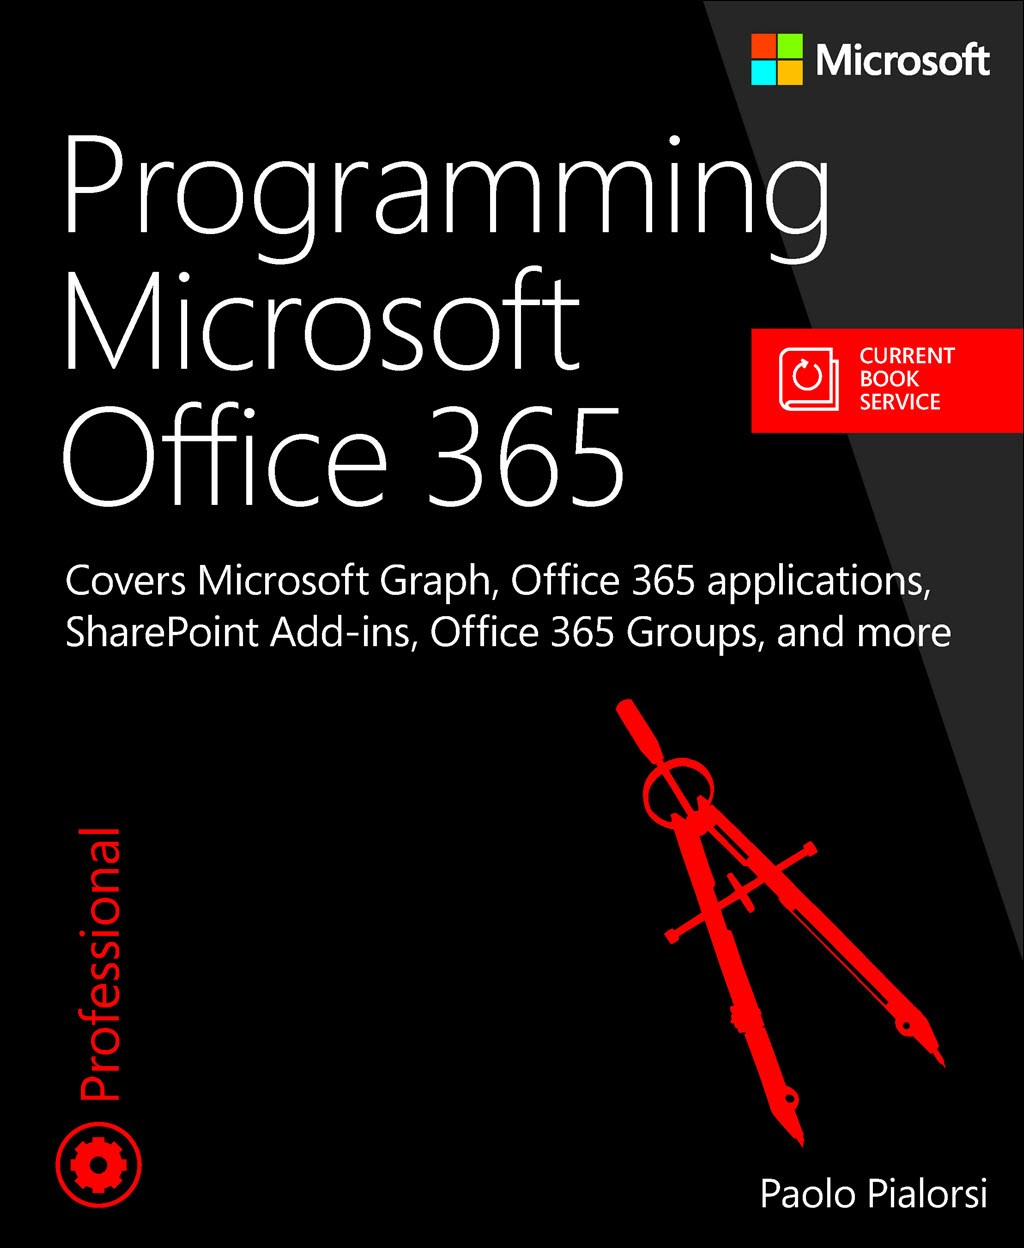 Programming Microsoft Office 365 (includes Current Book Service): Covers Microsoft Graph, Office 365 applications, SharePoint Add-ins, Office 365 Groups, and more